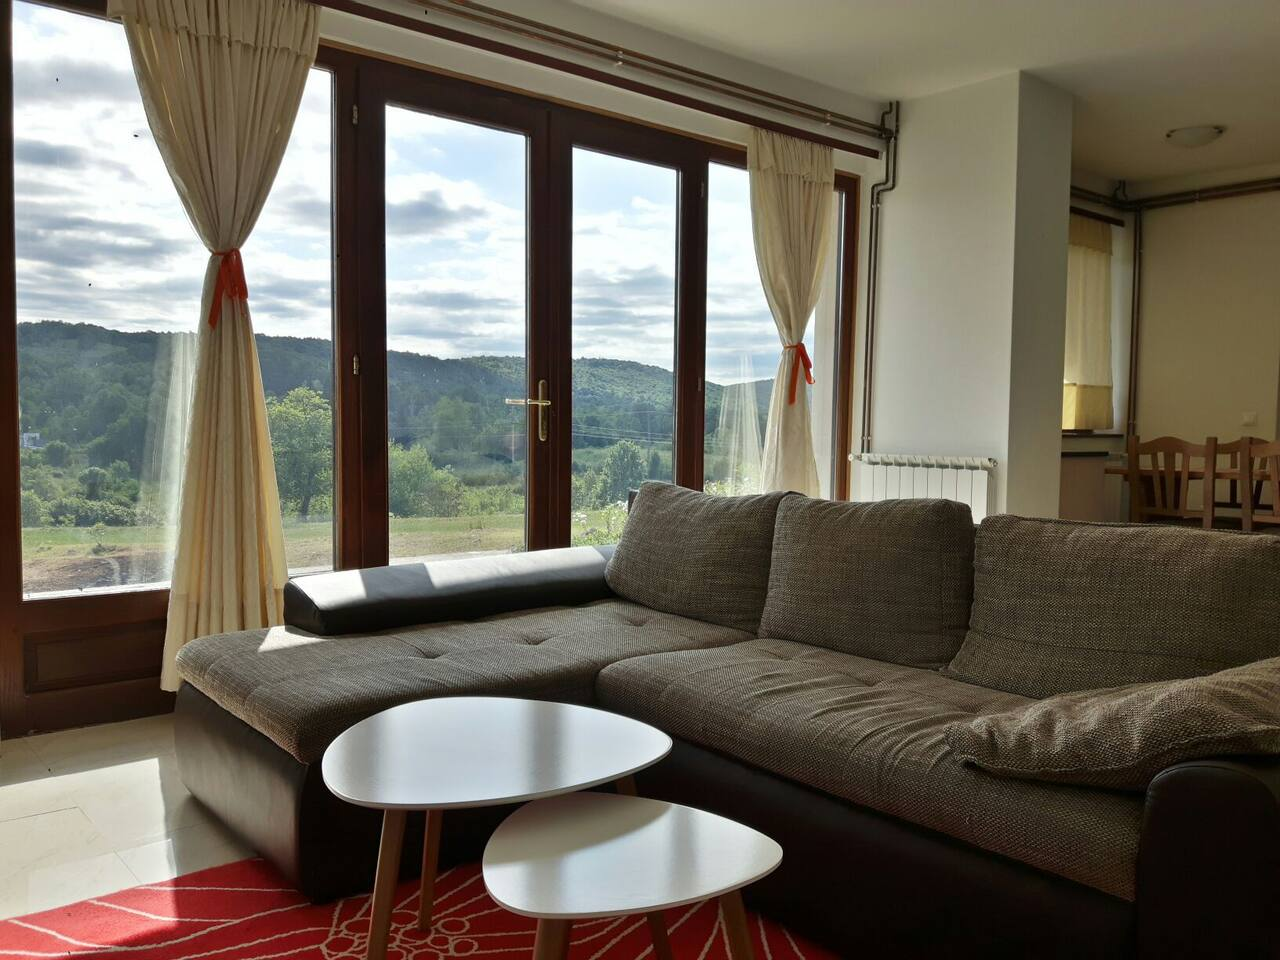 Sofa with coffee table, and beautiful view throught the glass.